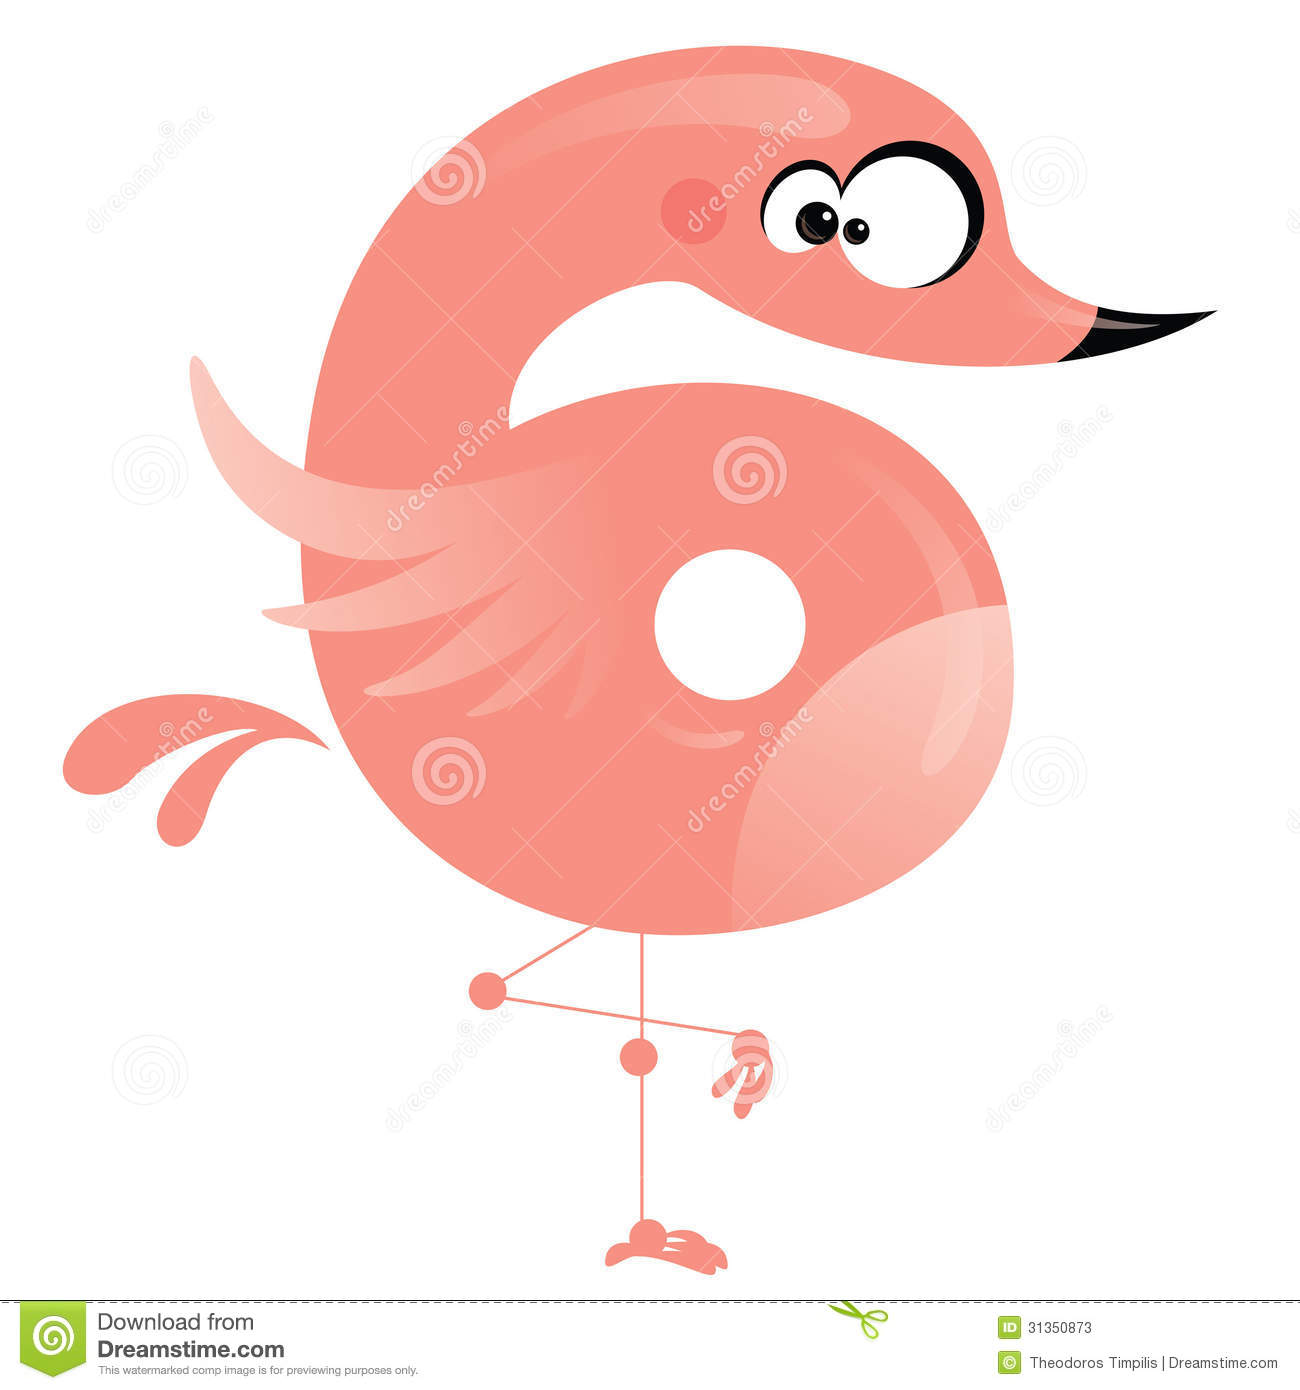 Number 6 funny flamingo standing in one leg mr no pr no 2 1785 1